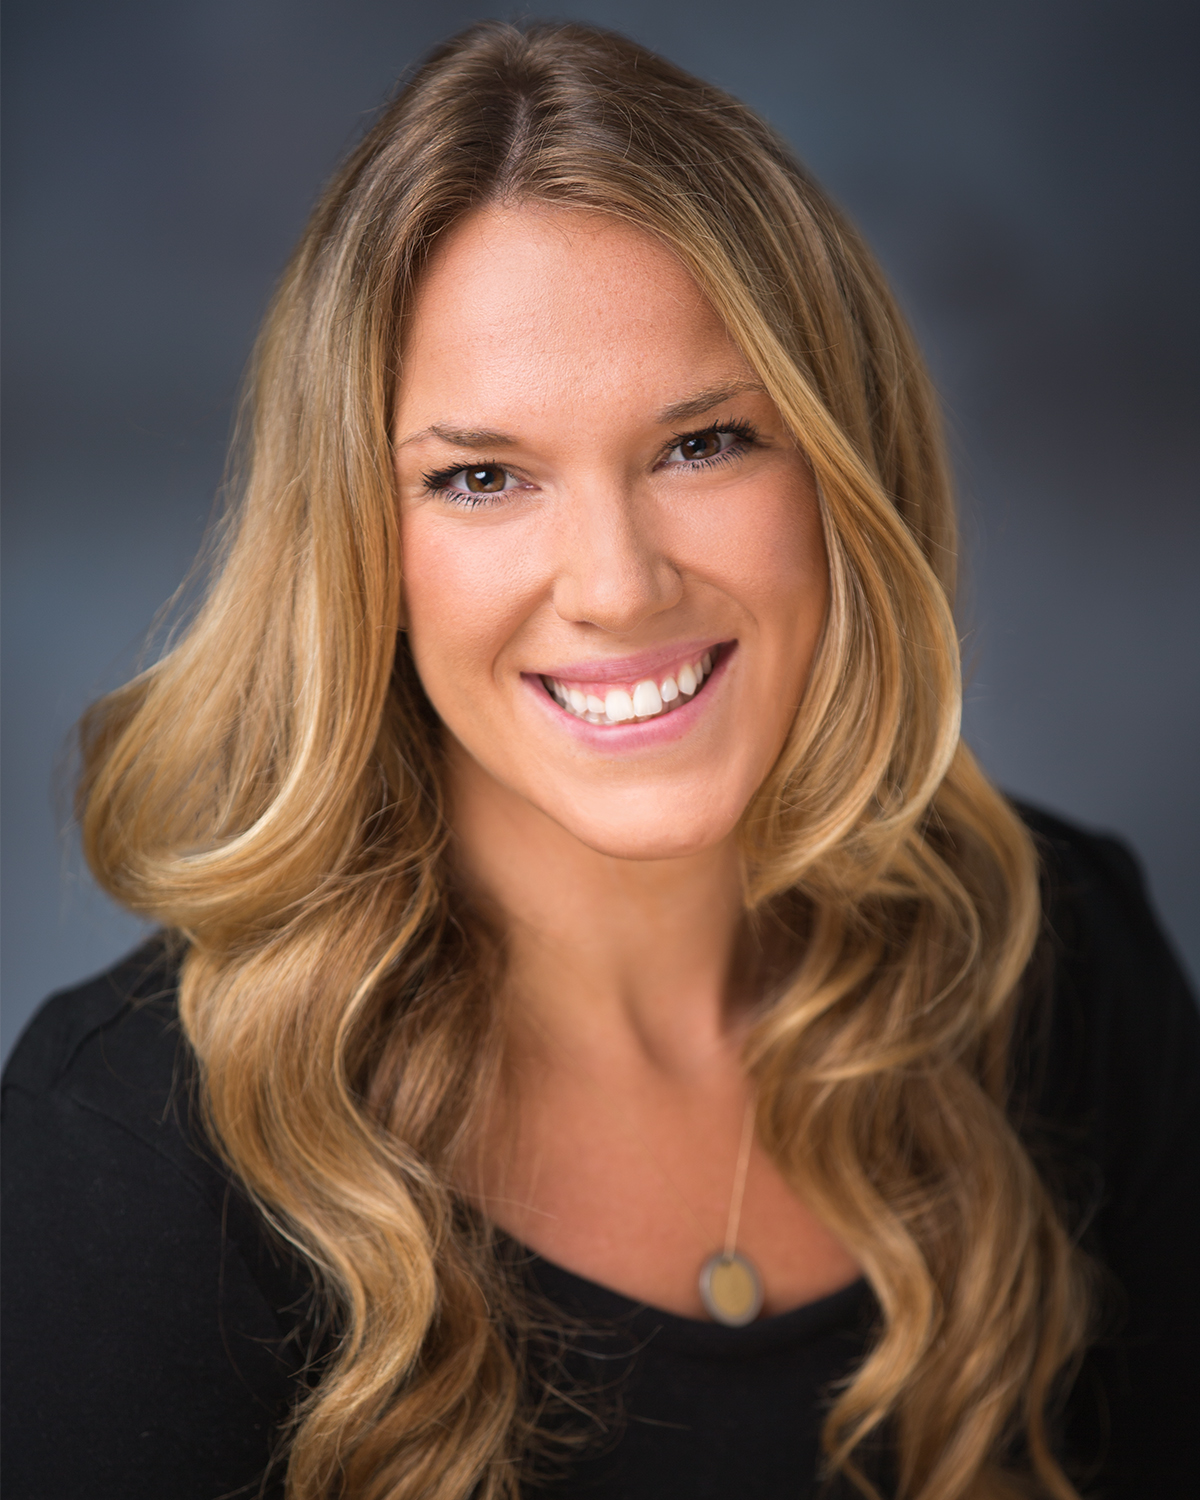 Bailey A. Hasty, PA-C, MPAS - Physician Assistant in Portland, OR